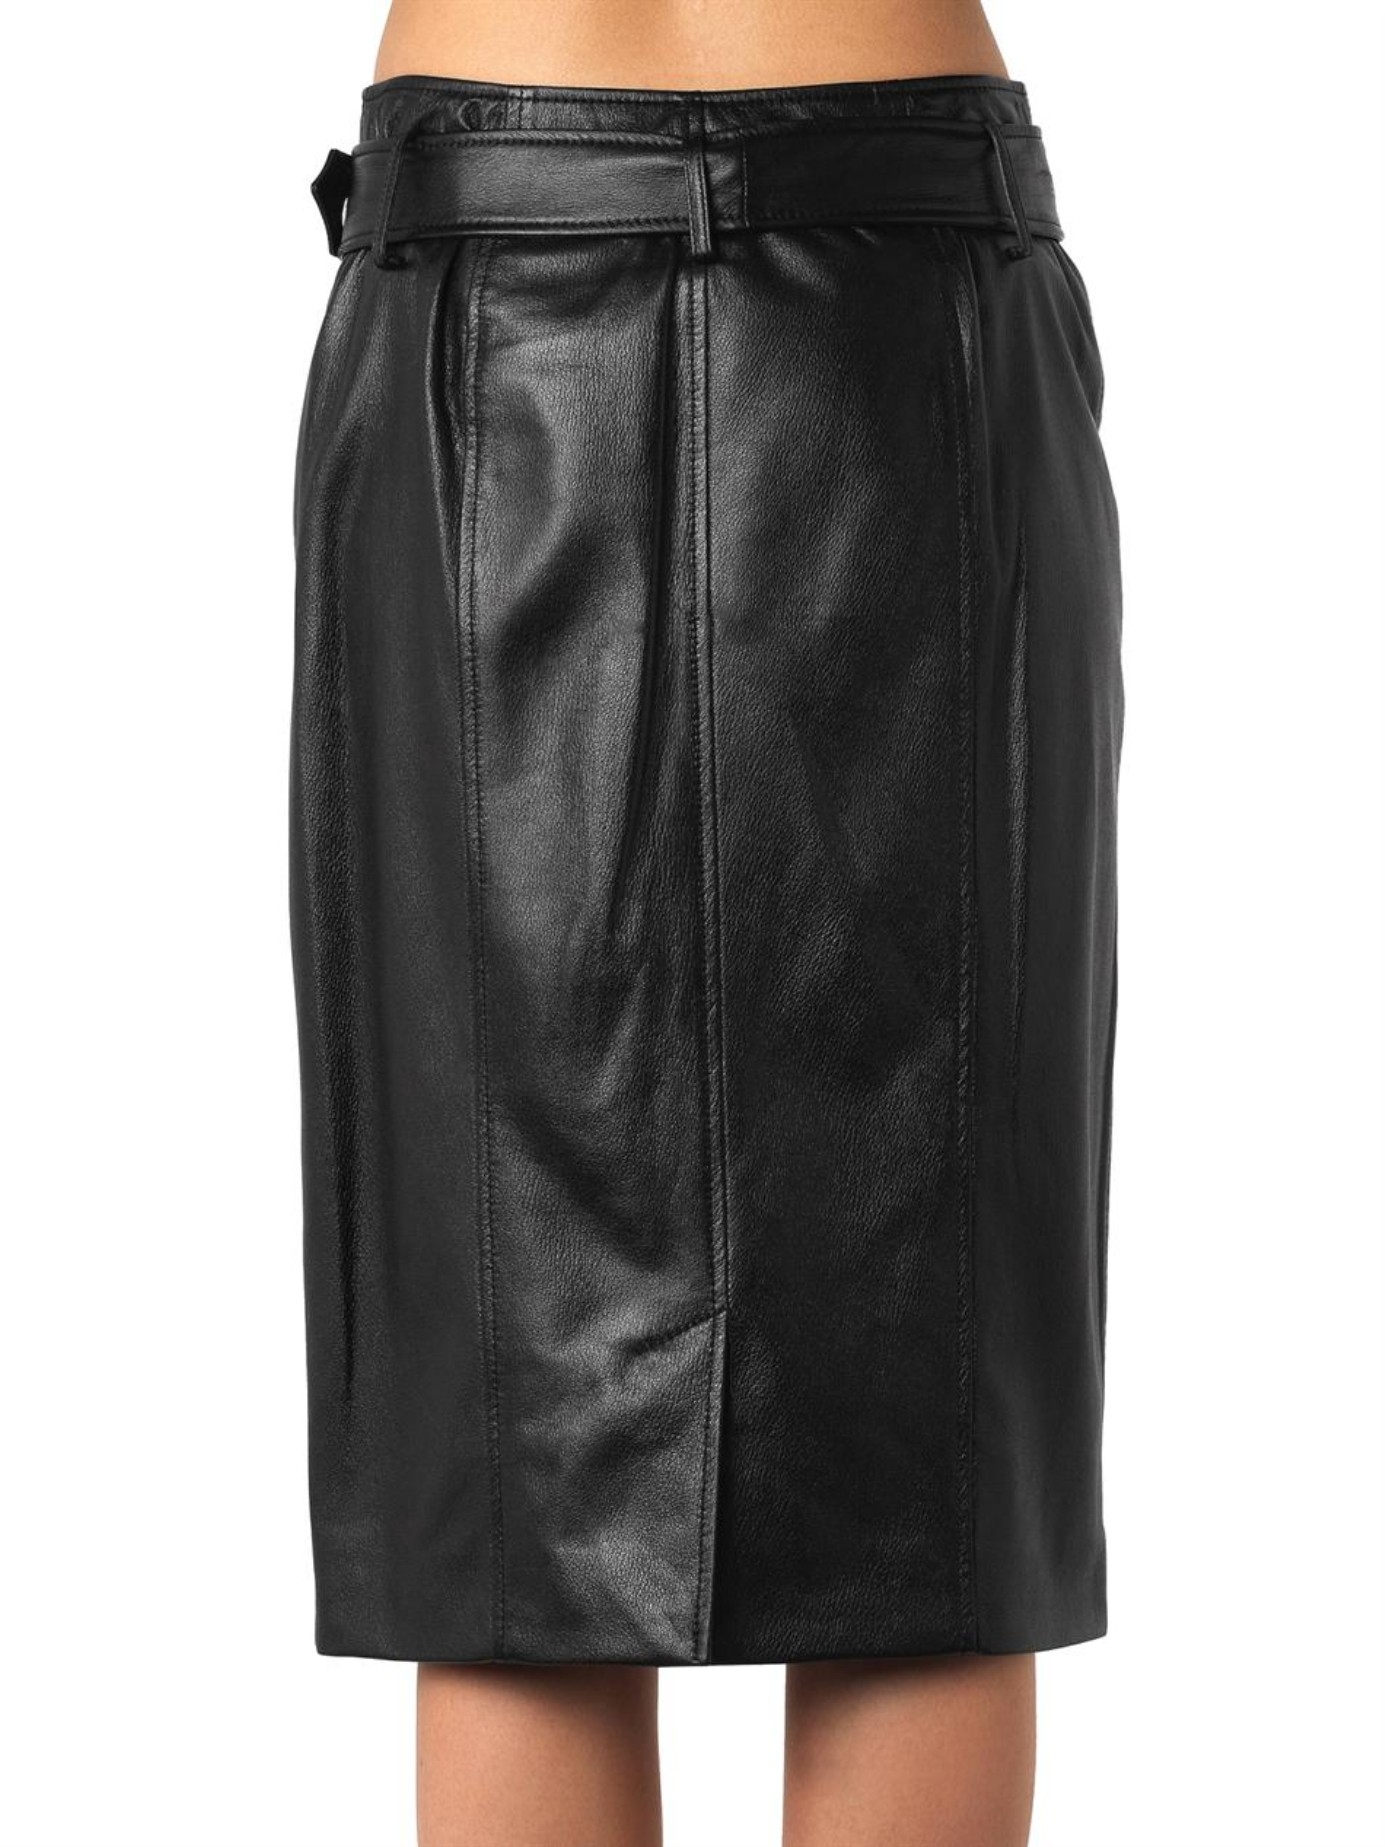 jason wu zip front leather pencil skirt in black lyst